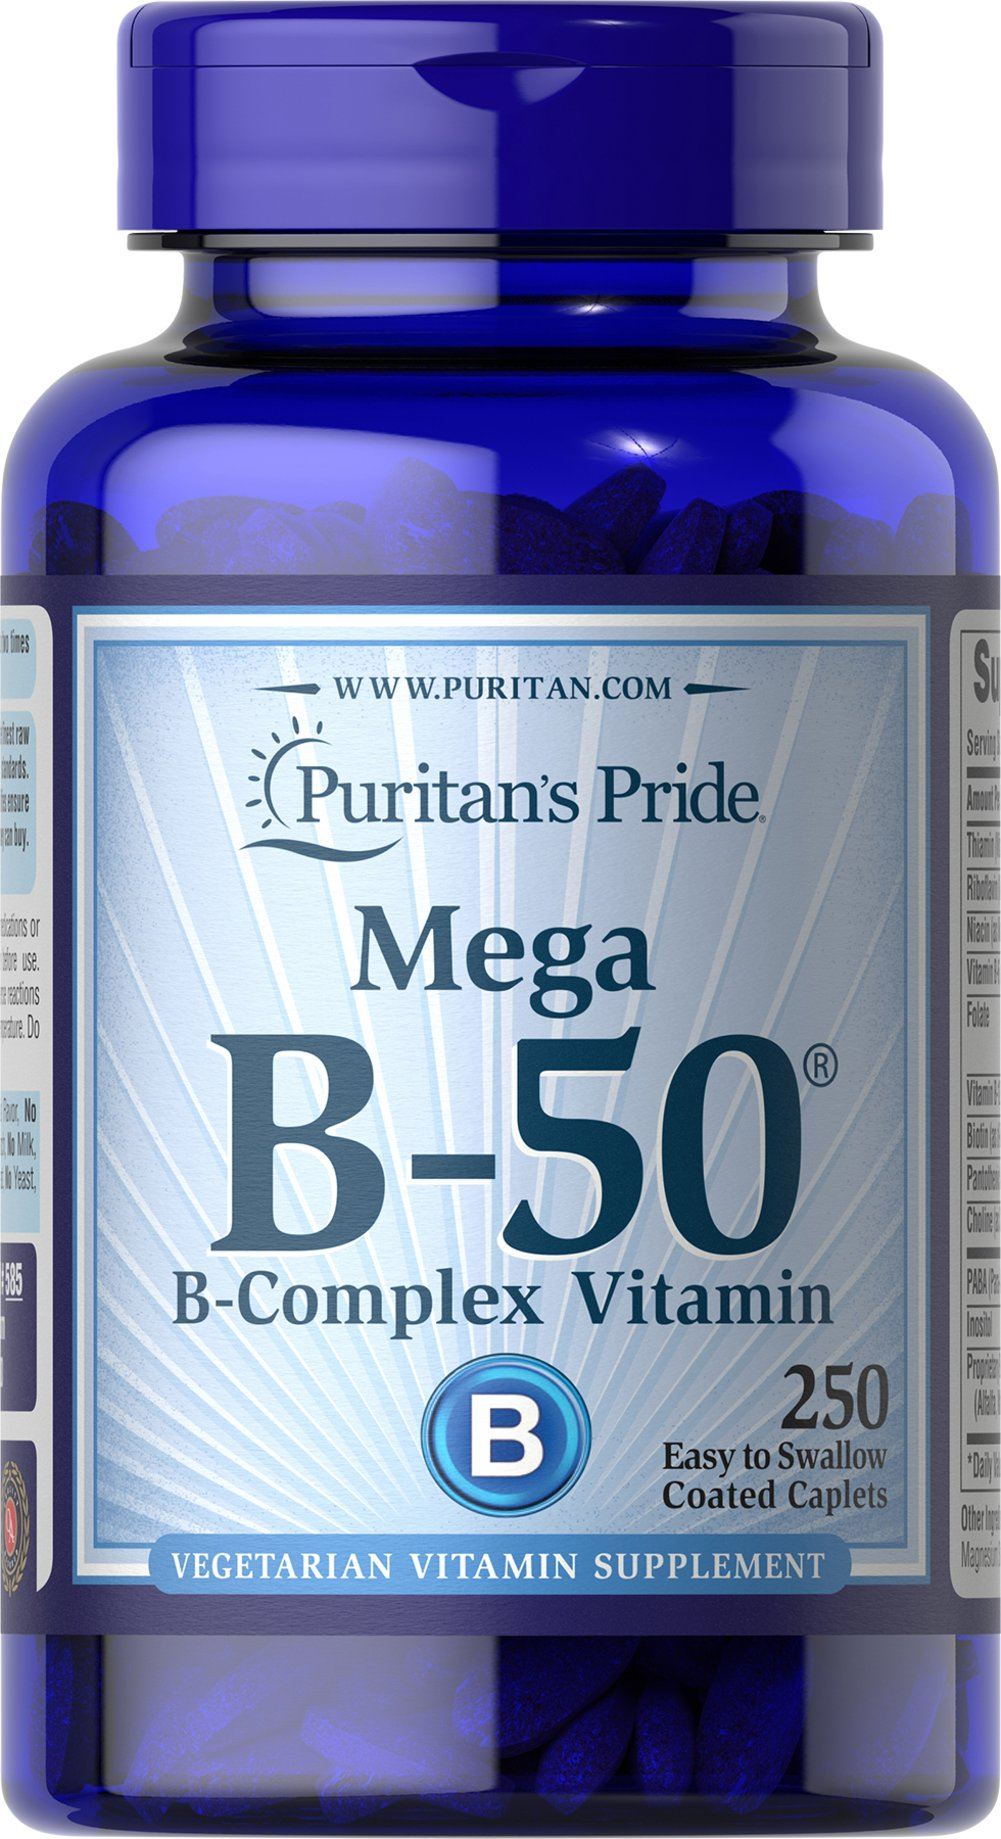 Vitamin B-50® Complex <p>The Vitamin B-50® Complex is made up of several vitamins that work well together to support nervous system health.** B Complex vitamins also promote energy metabolism.** Each nutrient in the Vitamin B Complex performs a unique role in maintaining proper metabolic functioning and is essential for well being.**</p> 250 Tablets 50 mg $34.99